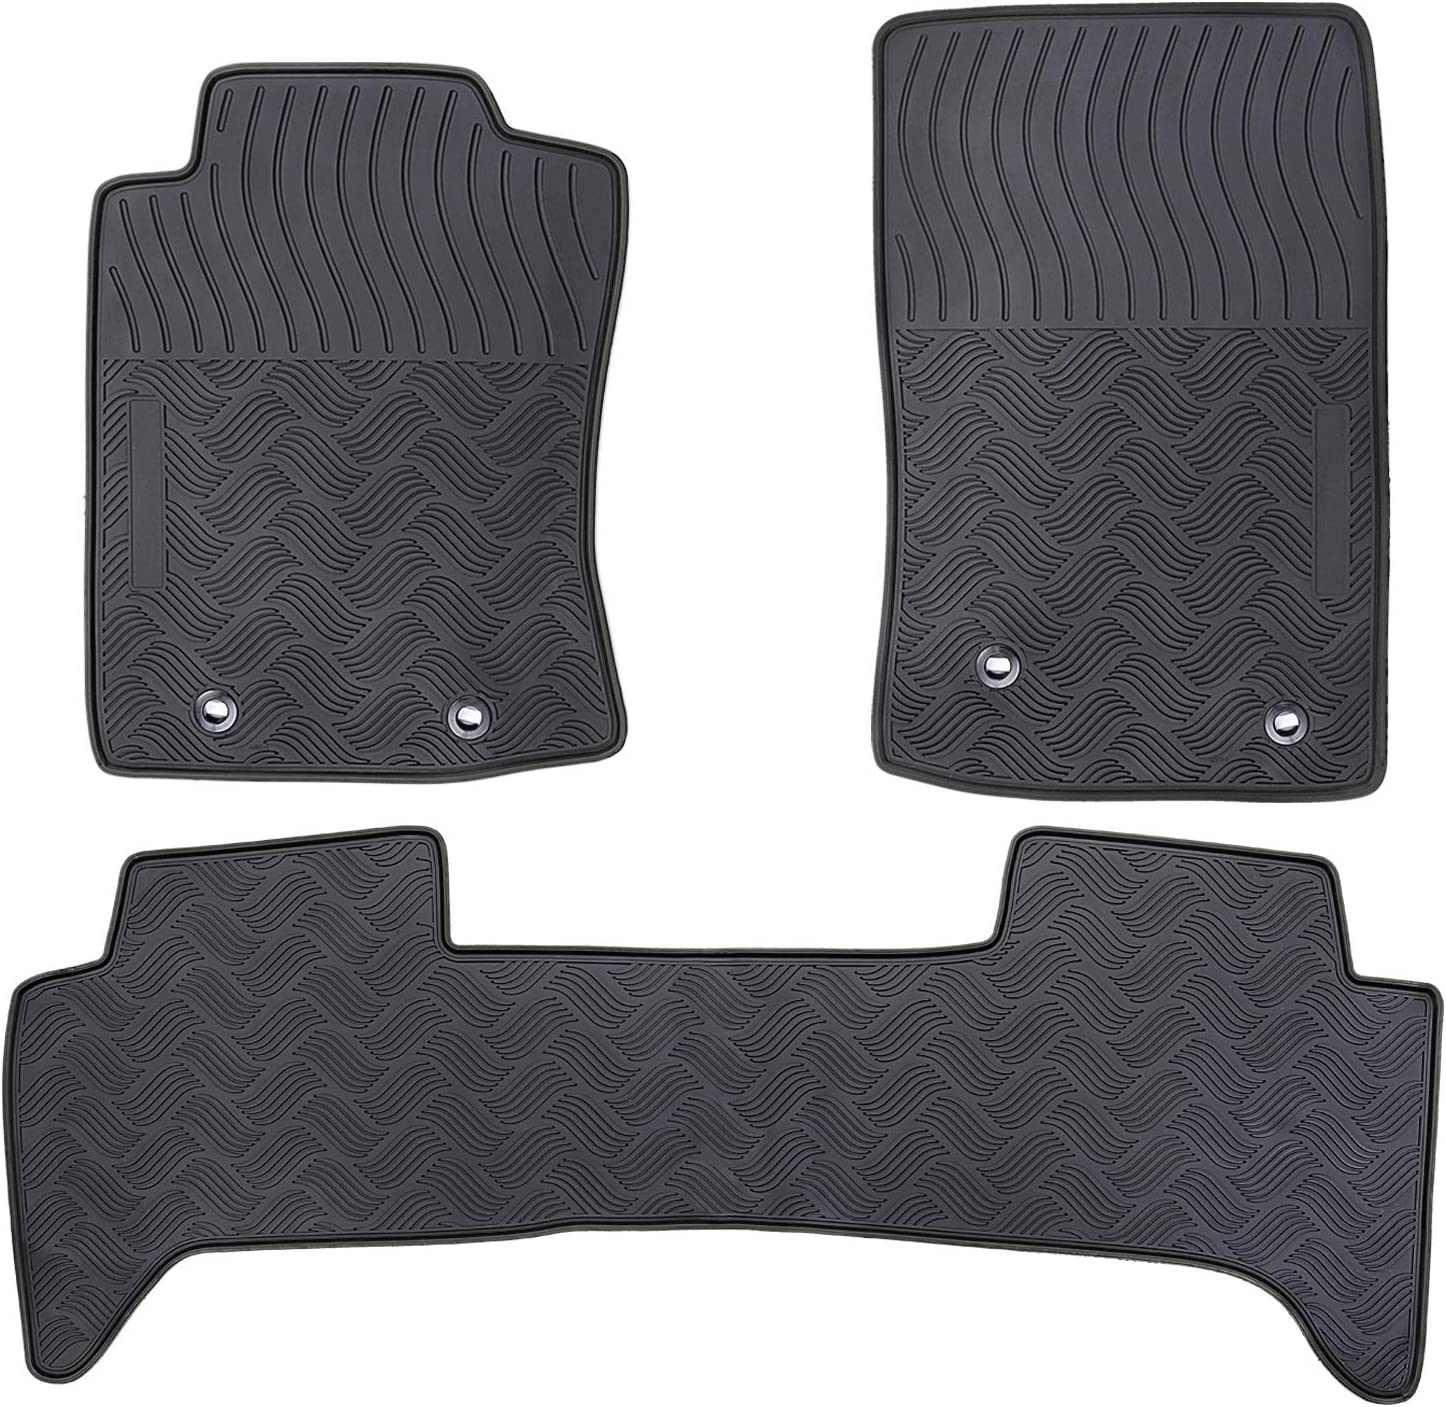 San Auto Car Floor Mats Custom Fit for Toyota Tacoma 2017 2016 Full Black Rubber Auto Floor Liners Set All Weather Protection Heavy Duty Odorless